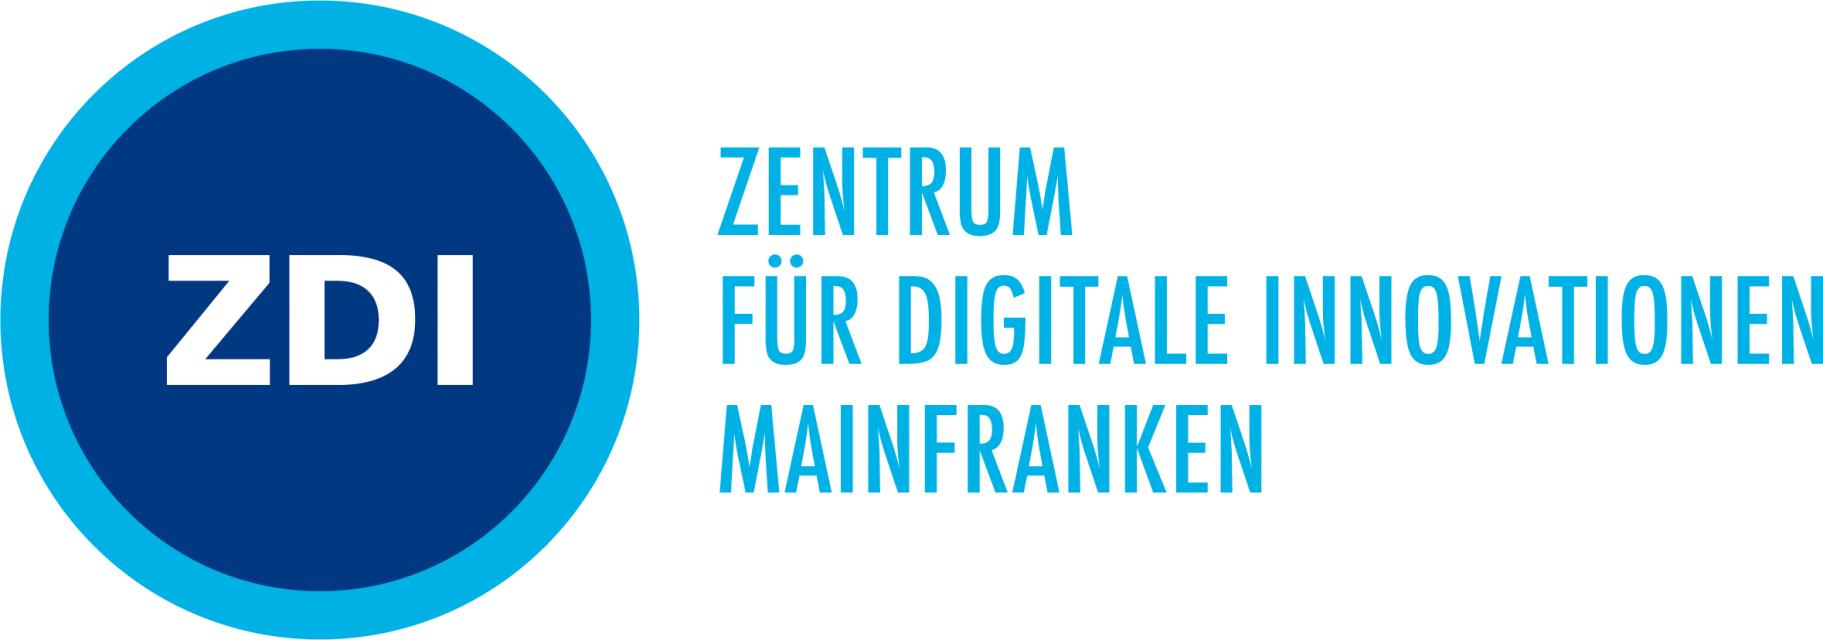 Zentrum für digitale Innovationen (ZDI) Mainfranken